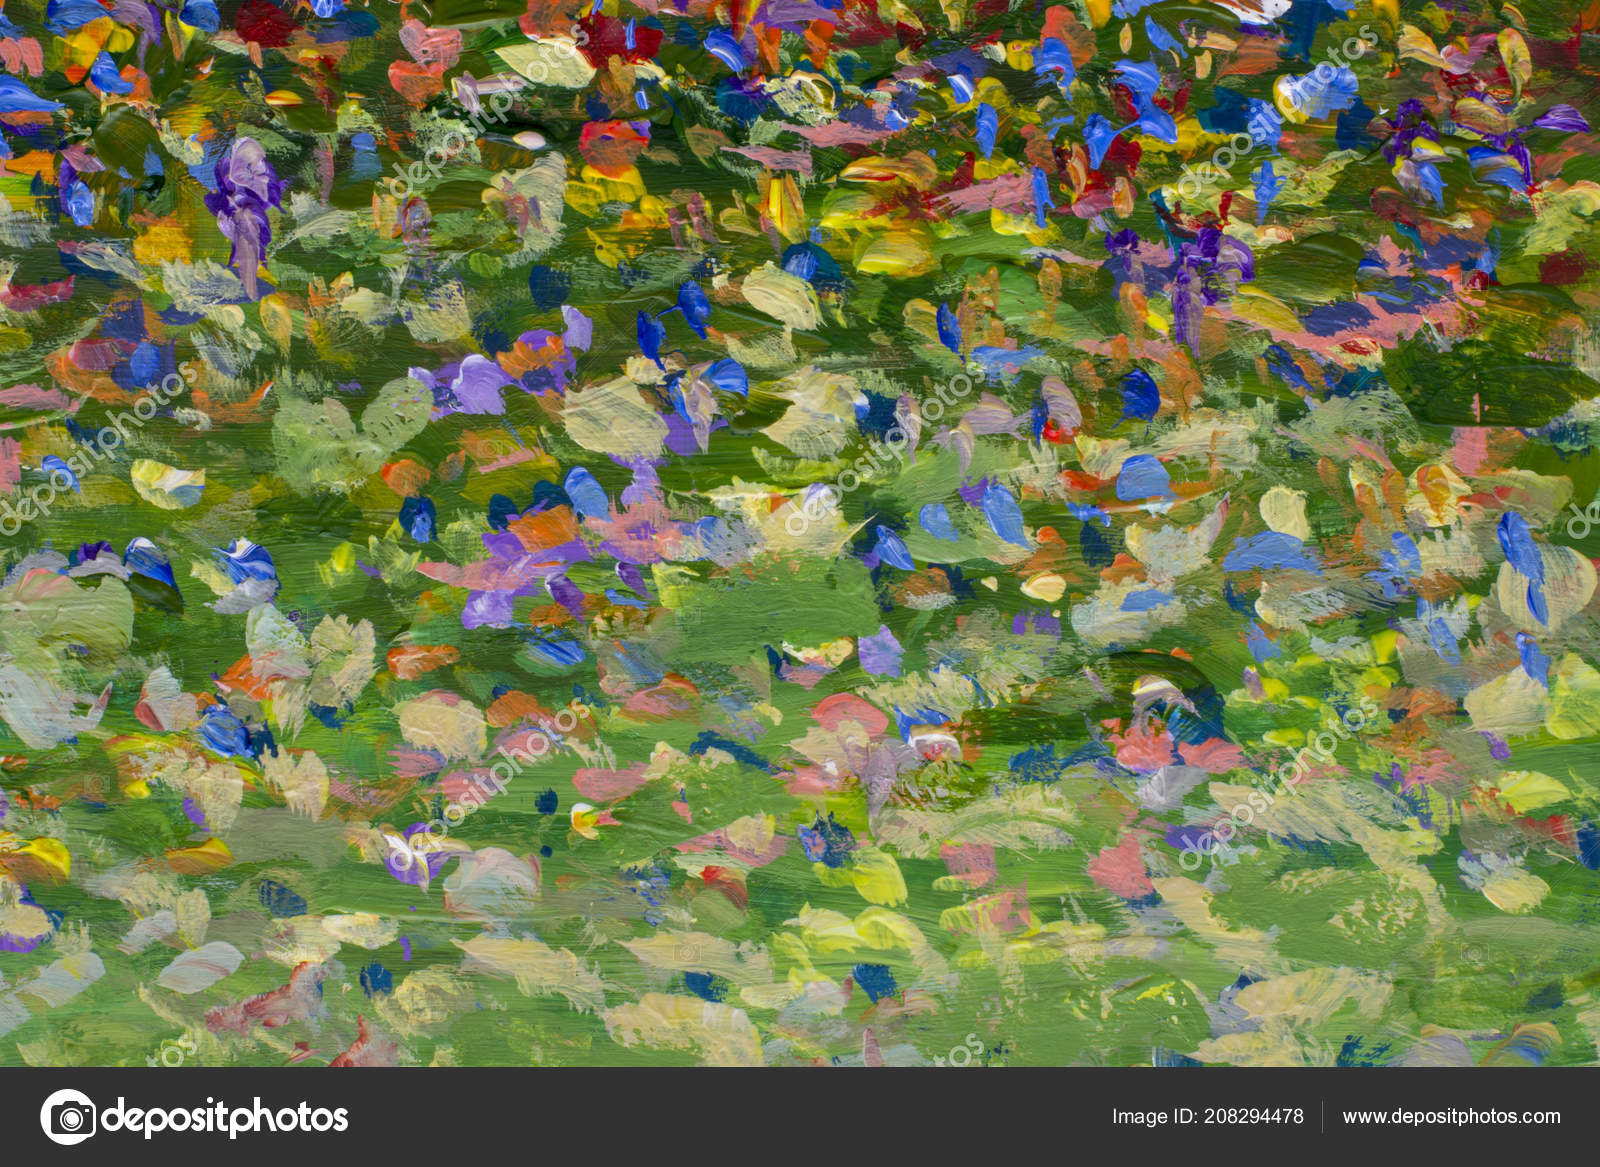 Impressionism Flowers Field Painting Handmade Multicolored Wildflowers Camomiles Poppies Flowers Stock Photo Image By C Weris7554 208294478